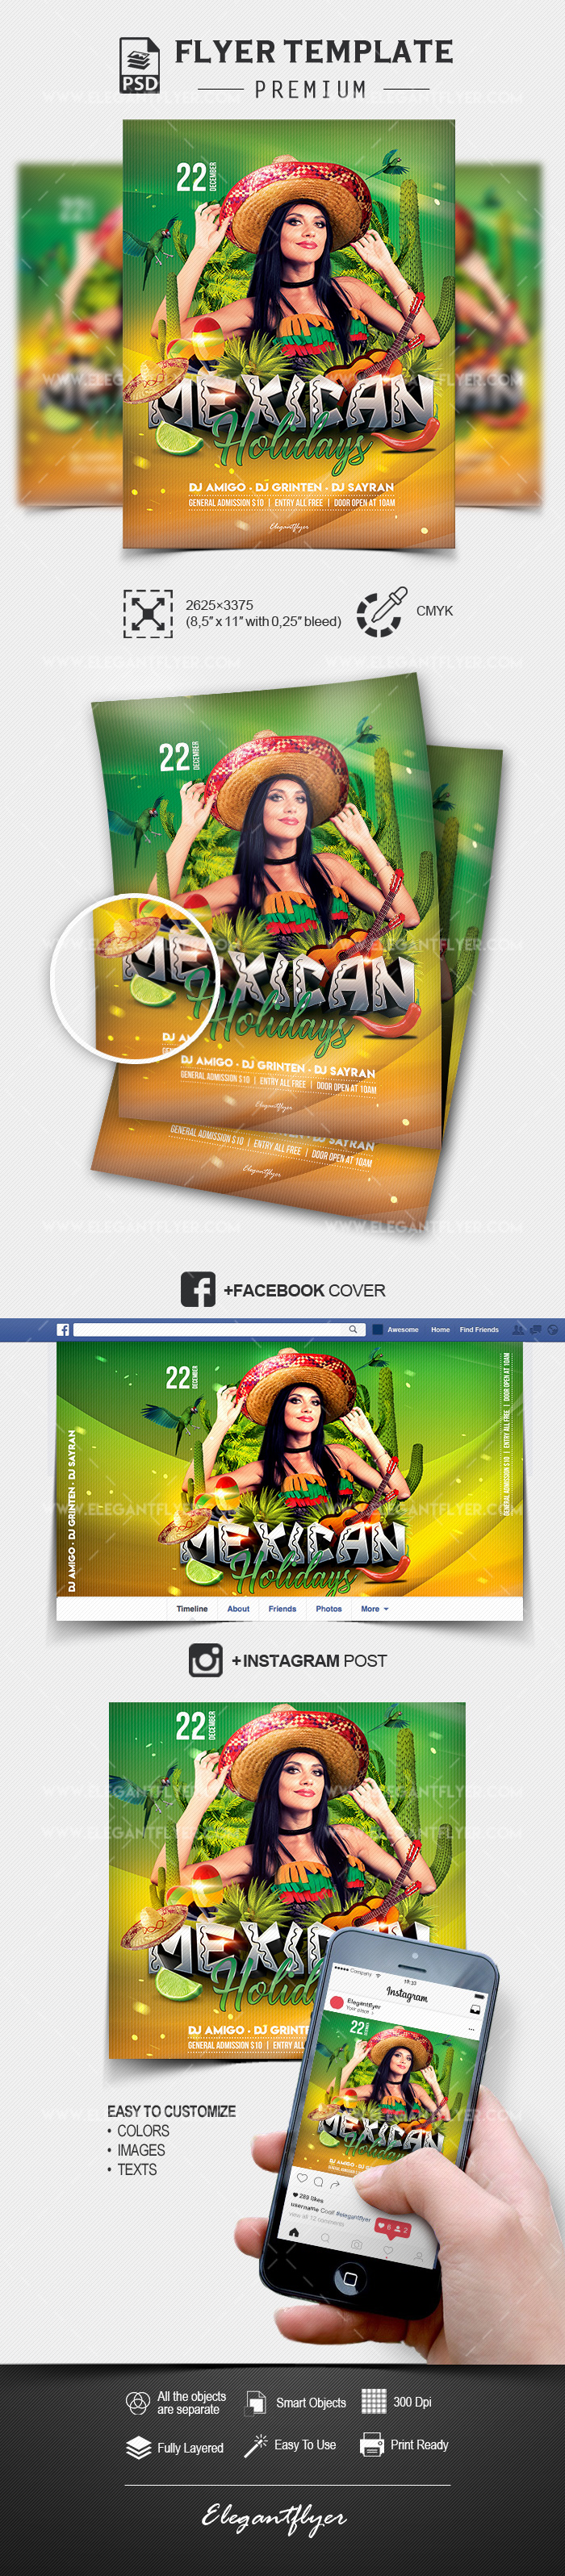 Mexican Holidays – Flyer PSD Template + Facebook Cover + Instagram Post